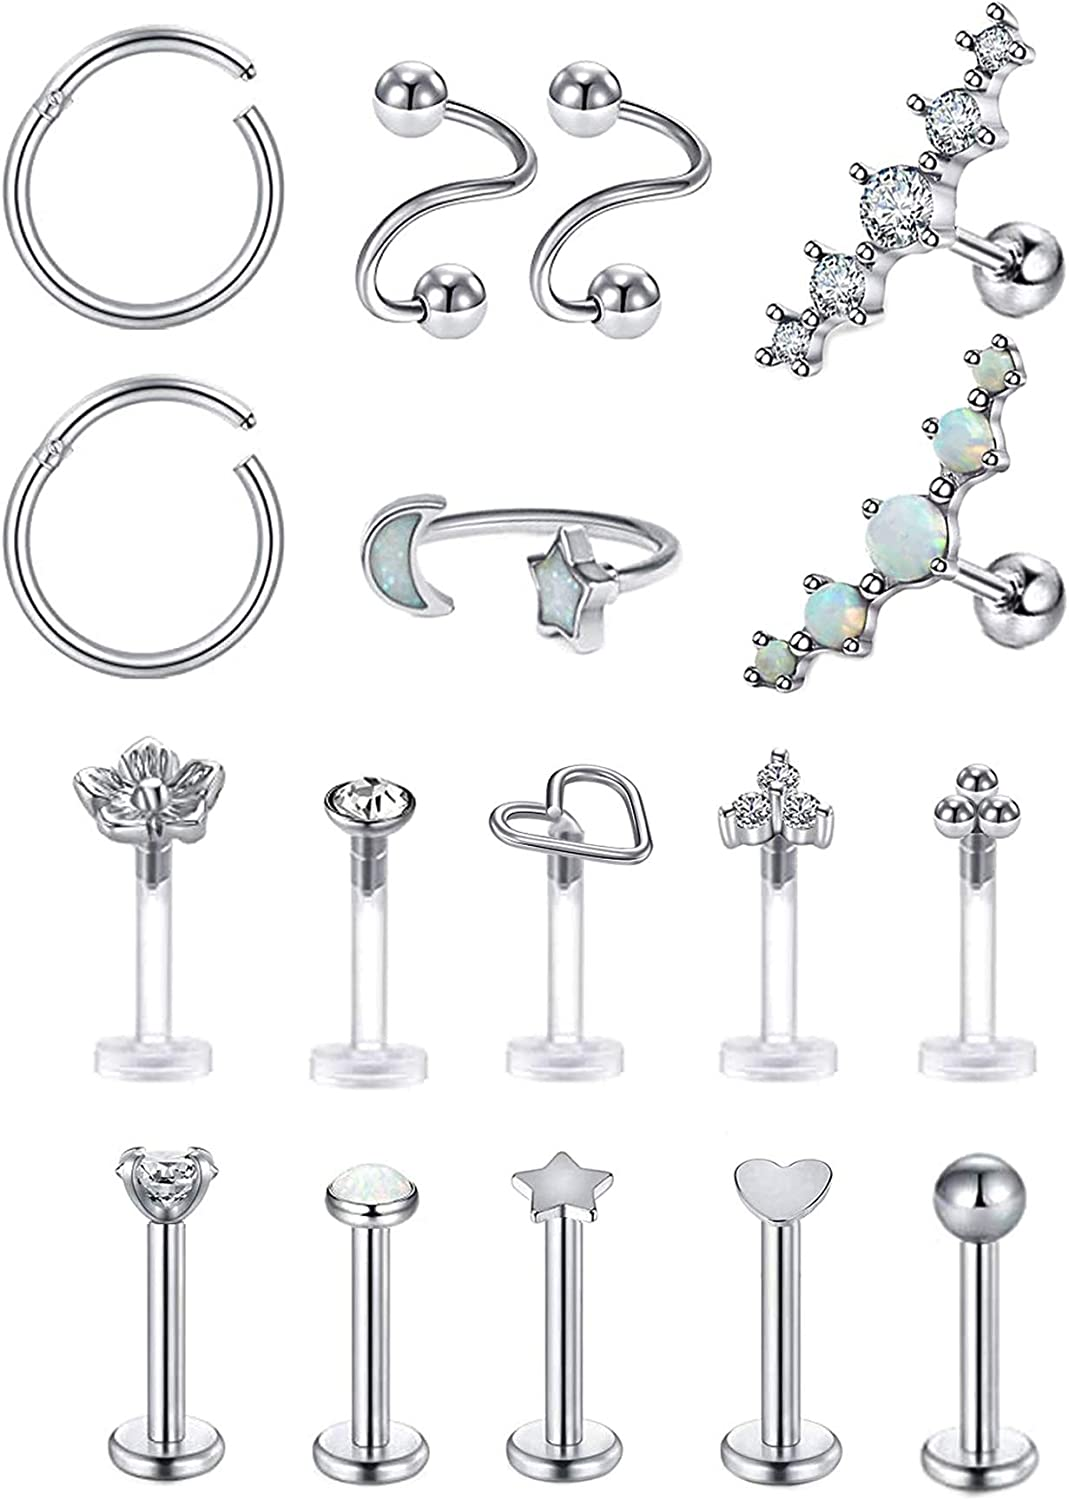 Masedy 17Pcs Stainless Steel Tragus Earrings Studs Cartilage Helix Daith Earring Labret Lip Ring Body Piercing Jewelry